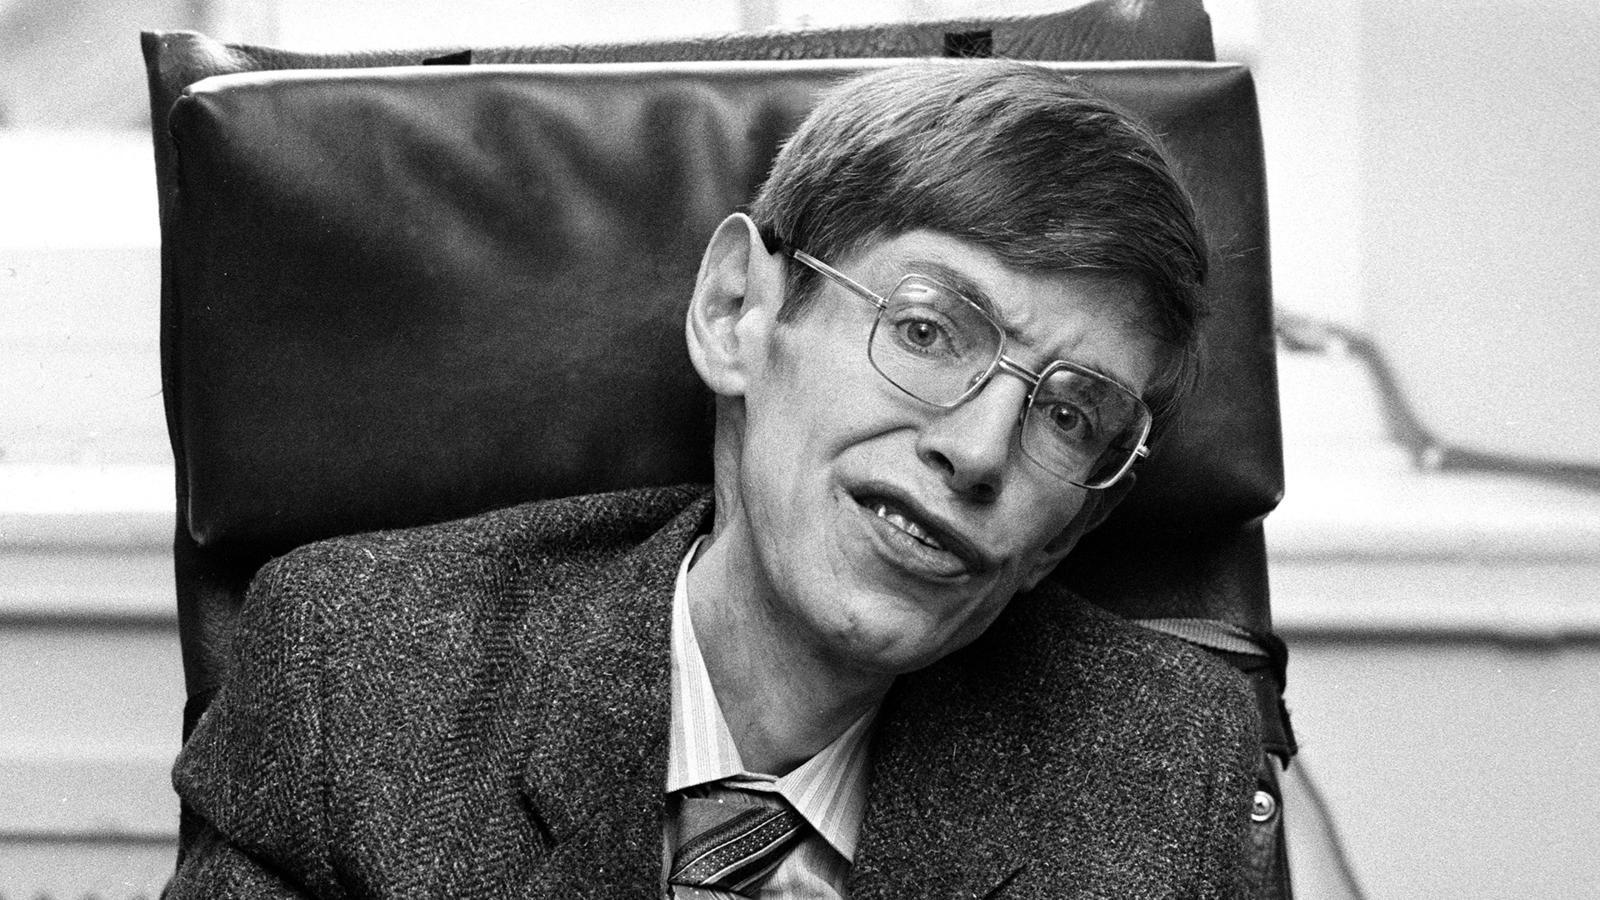 These are the discoveries that made Stephen Hawking famous